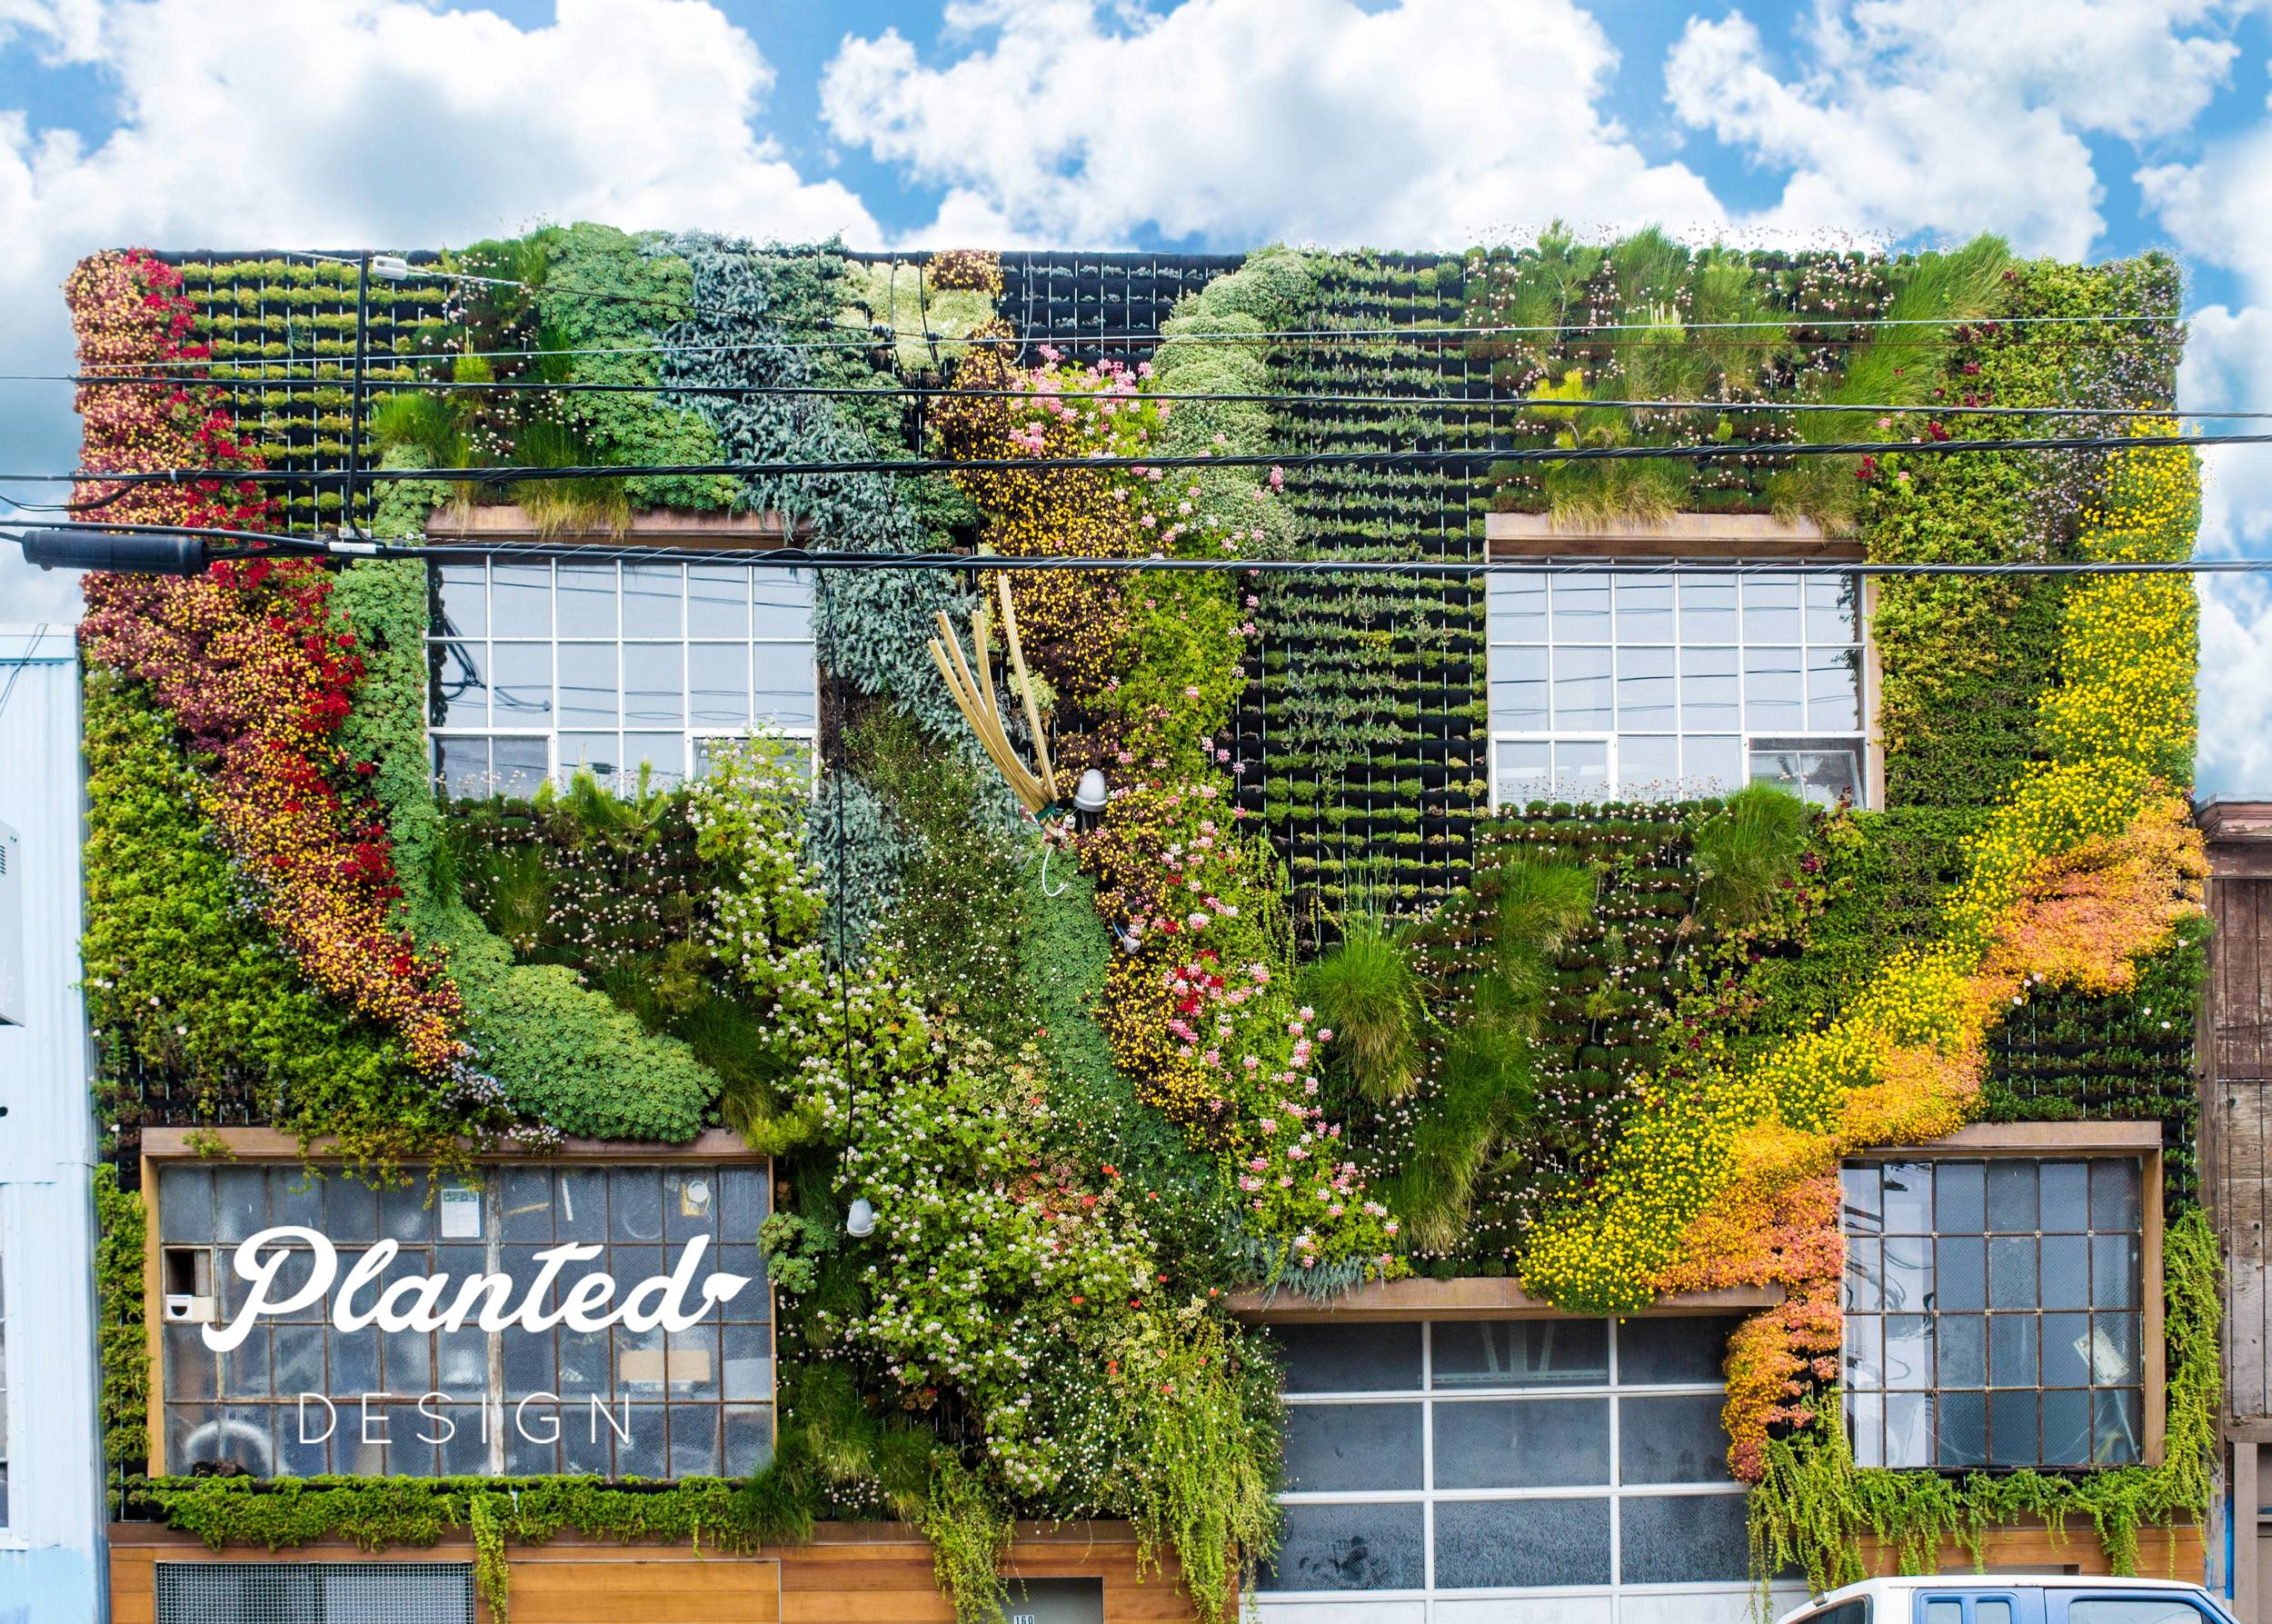 Planted Design, Living Wall Sf Mission District Amanda Goldberg Vertical Wall Green Wall BeSafeHouse-041116.jpg